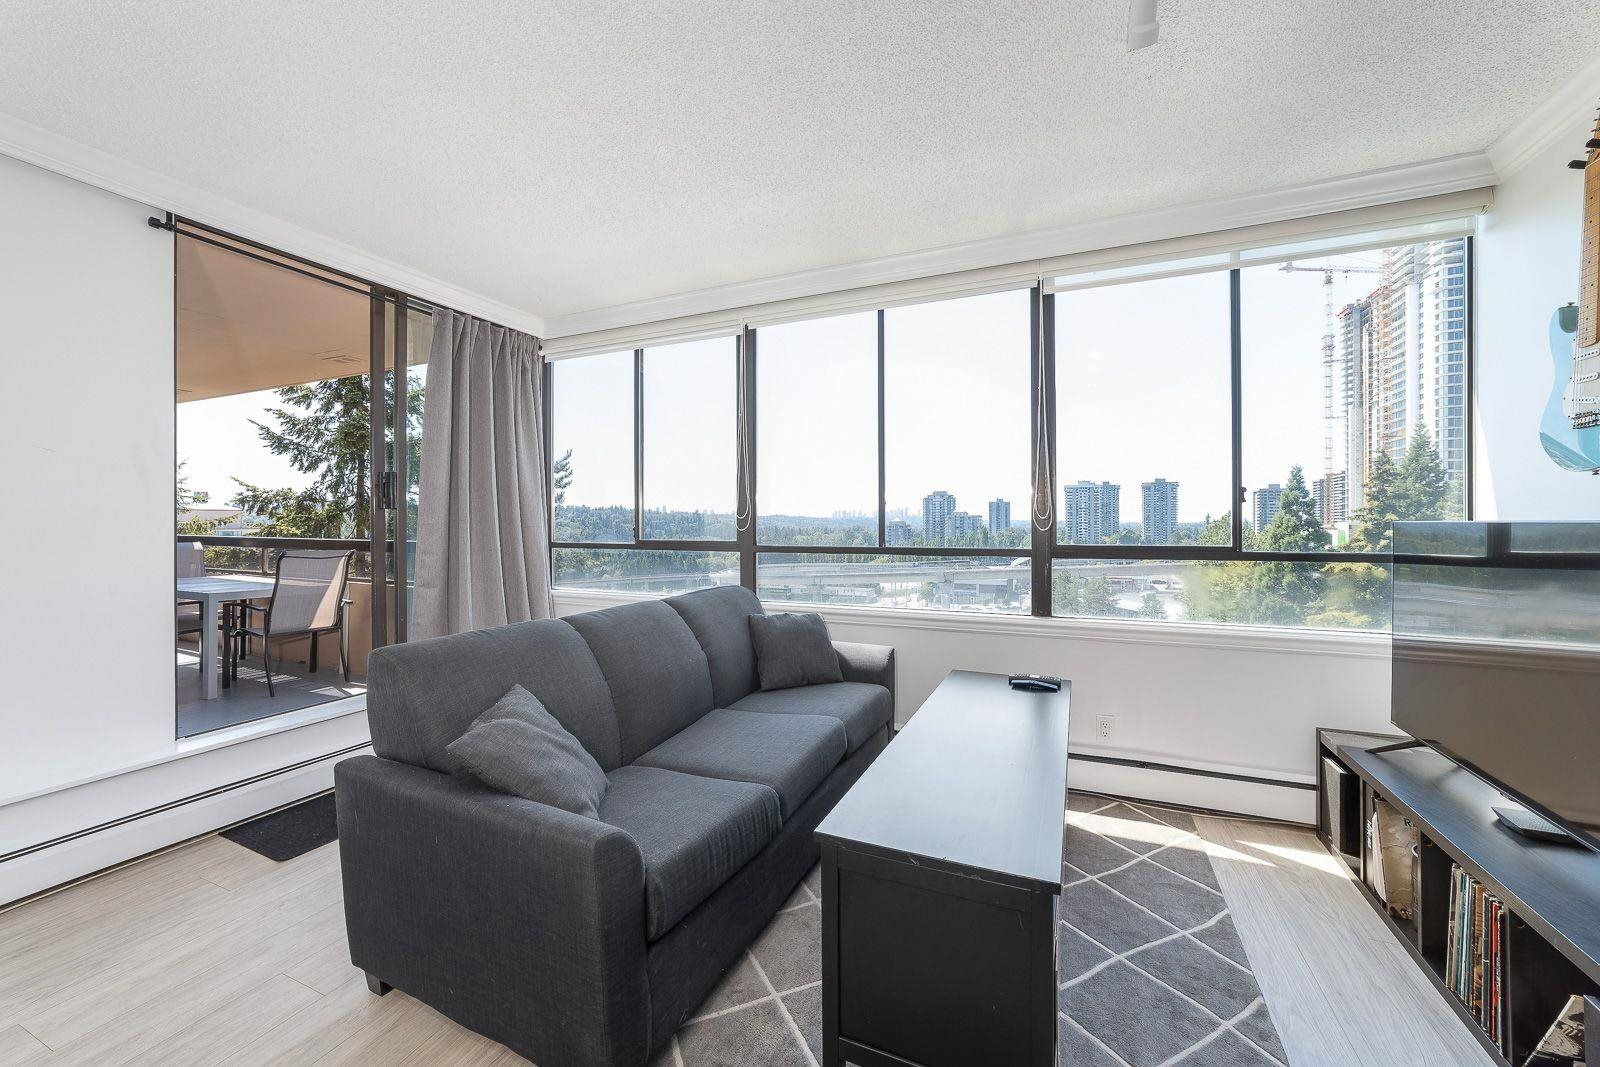 """Main Photo: 609 460 WESTVIEW Street in Coquitlam: Coquitlam West Condo for sale in """"PACIFIC HOUSE"""" : MLS®# R2601217"""